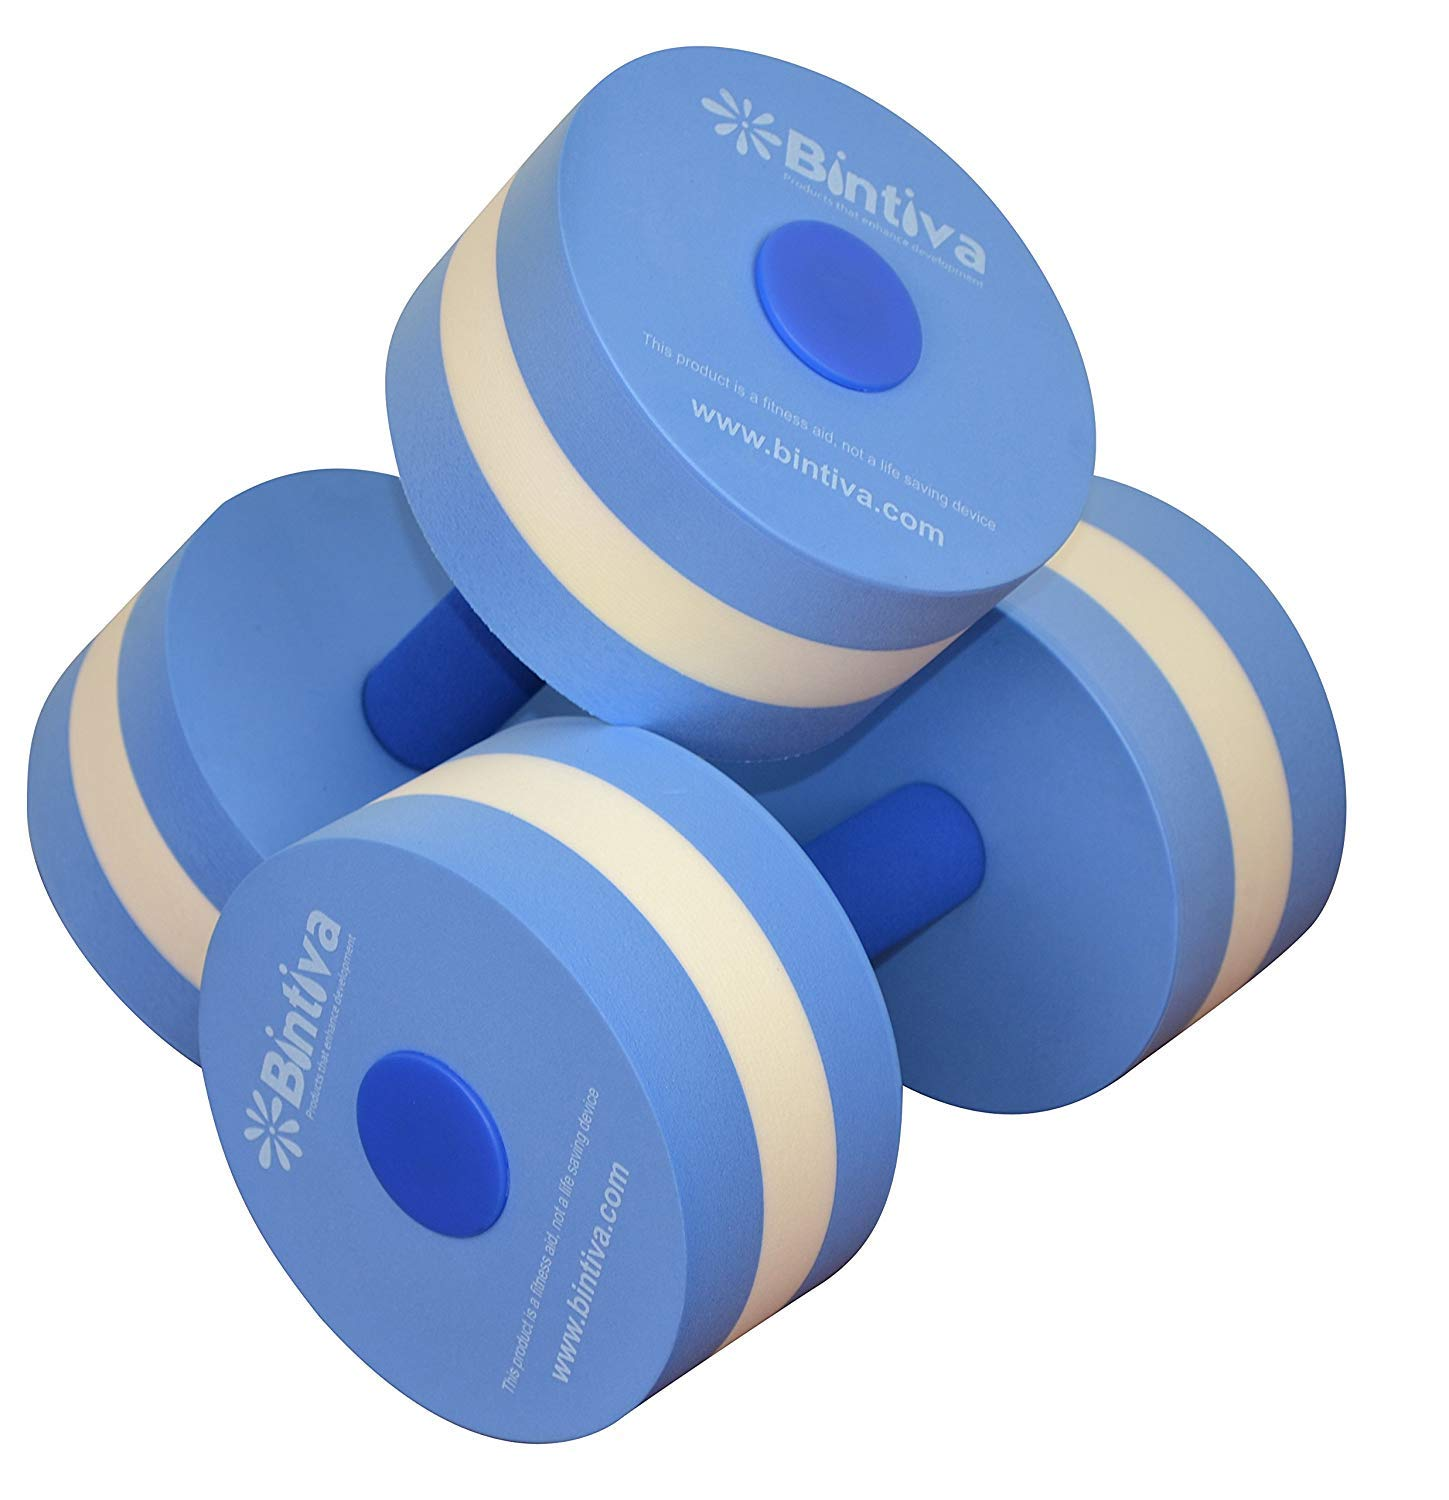 Aqua Dumbbell Set - Provides Resistance For Water Aerobics Fitness and Pool Exercises - 1 Pair - 3 Sizes Available bintiva